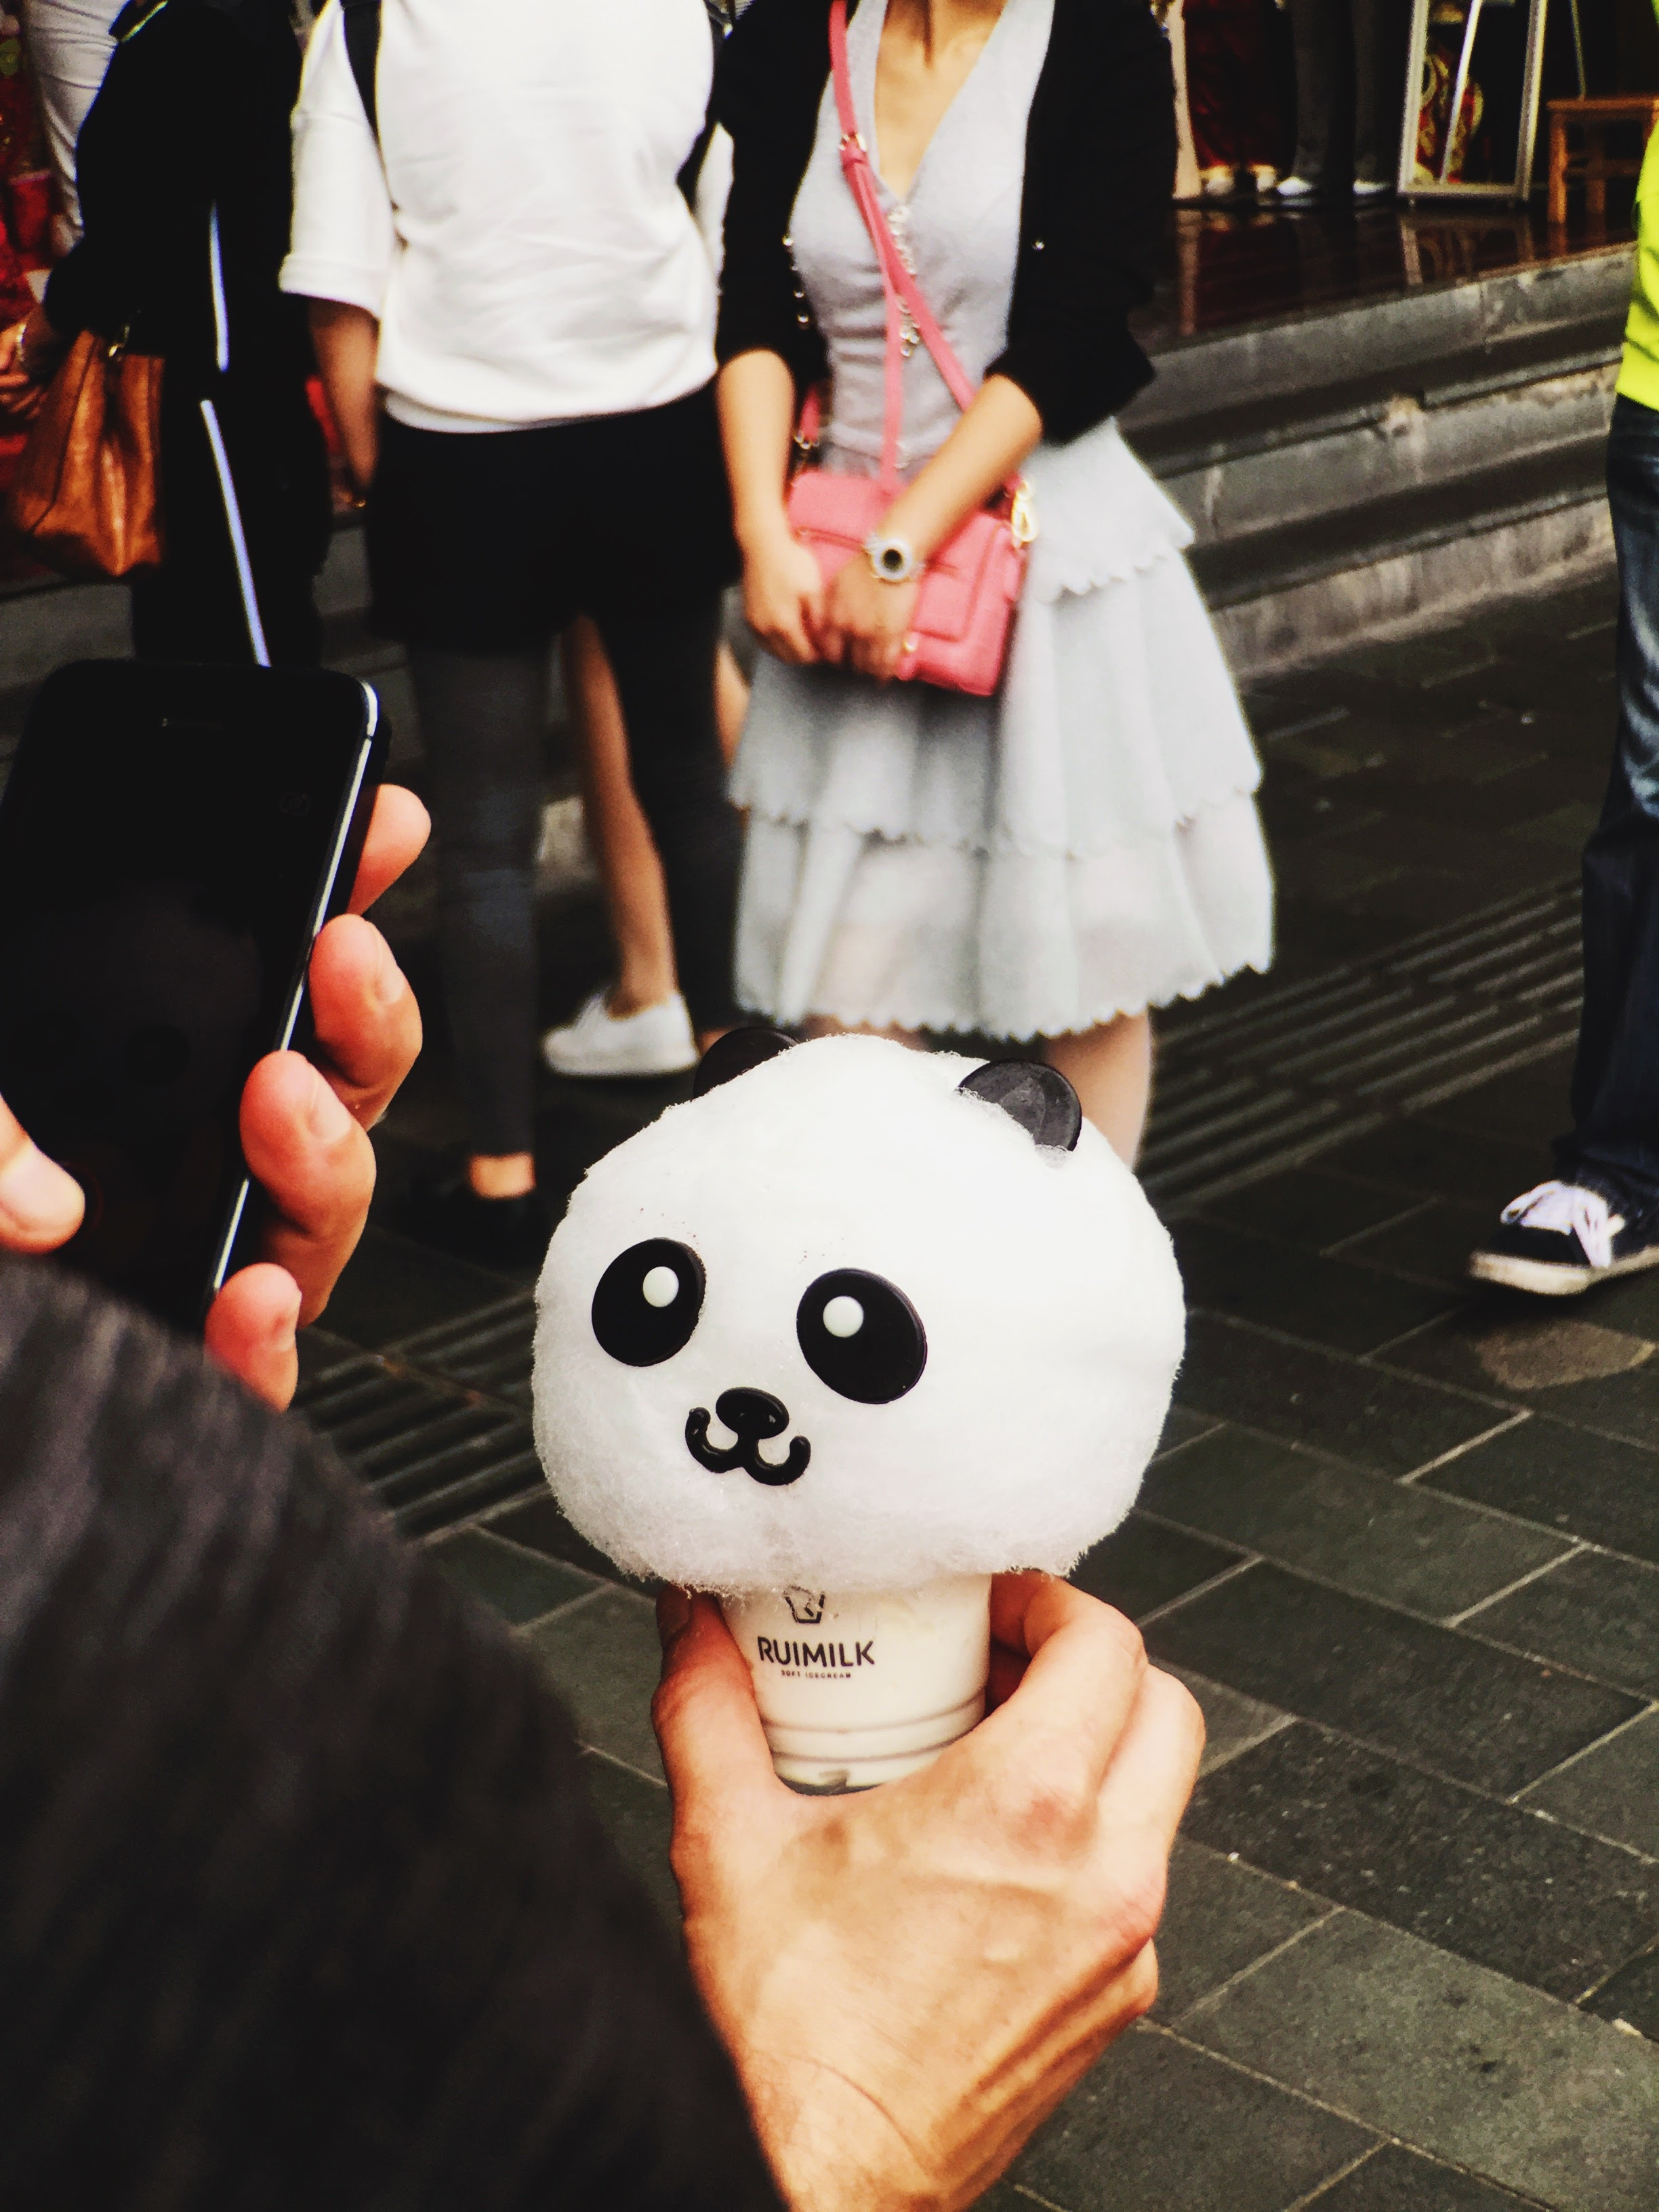 rumimilk panda icecream, snapchatting, and an epic outfit.